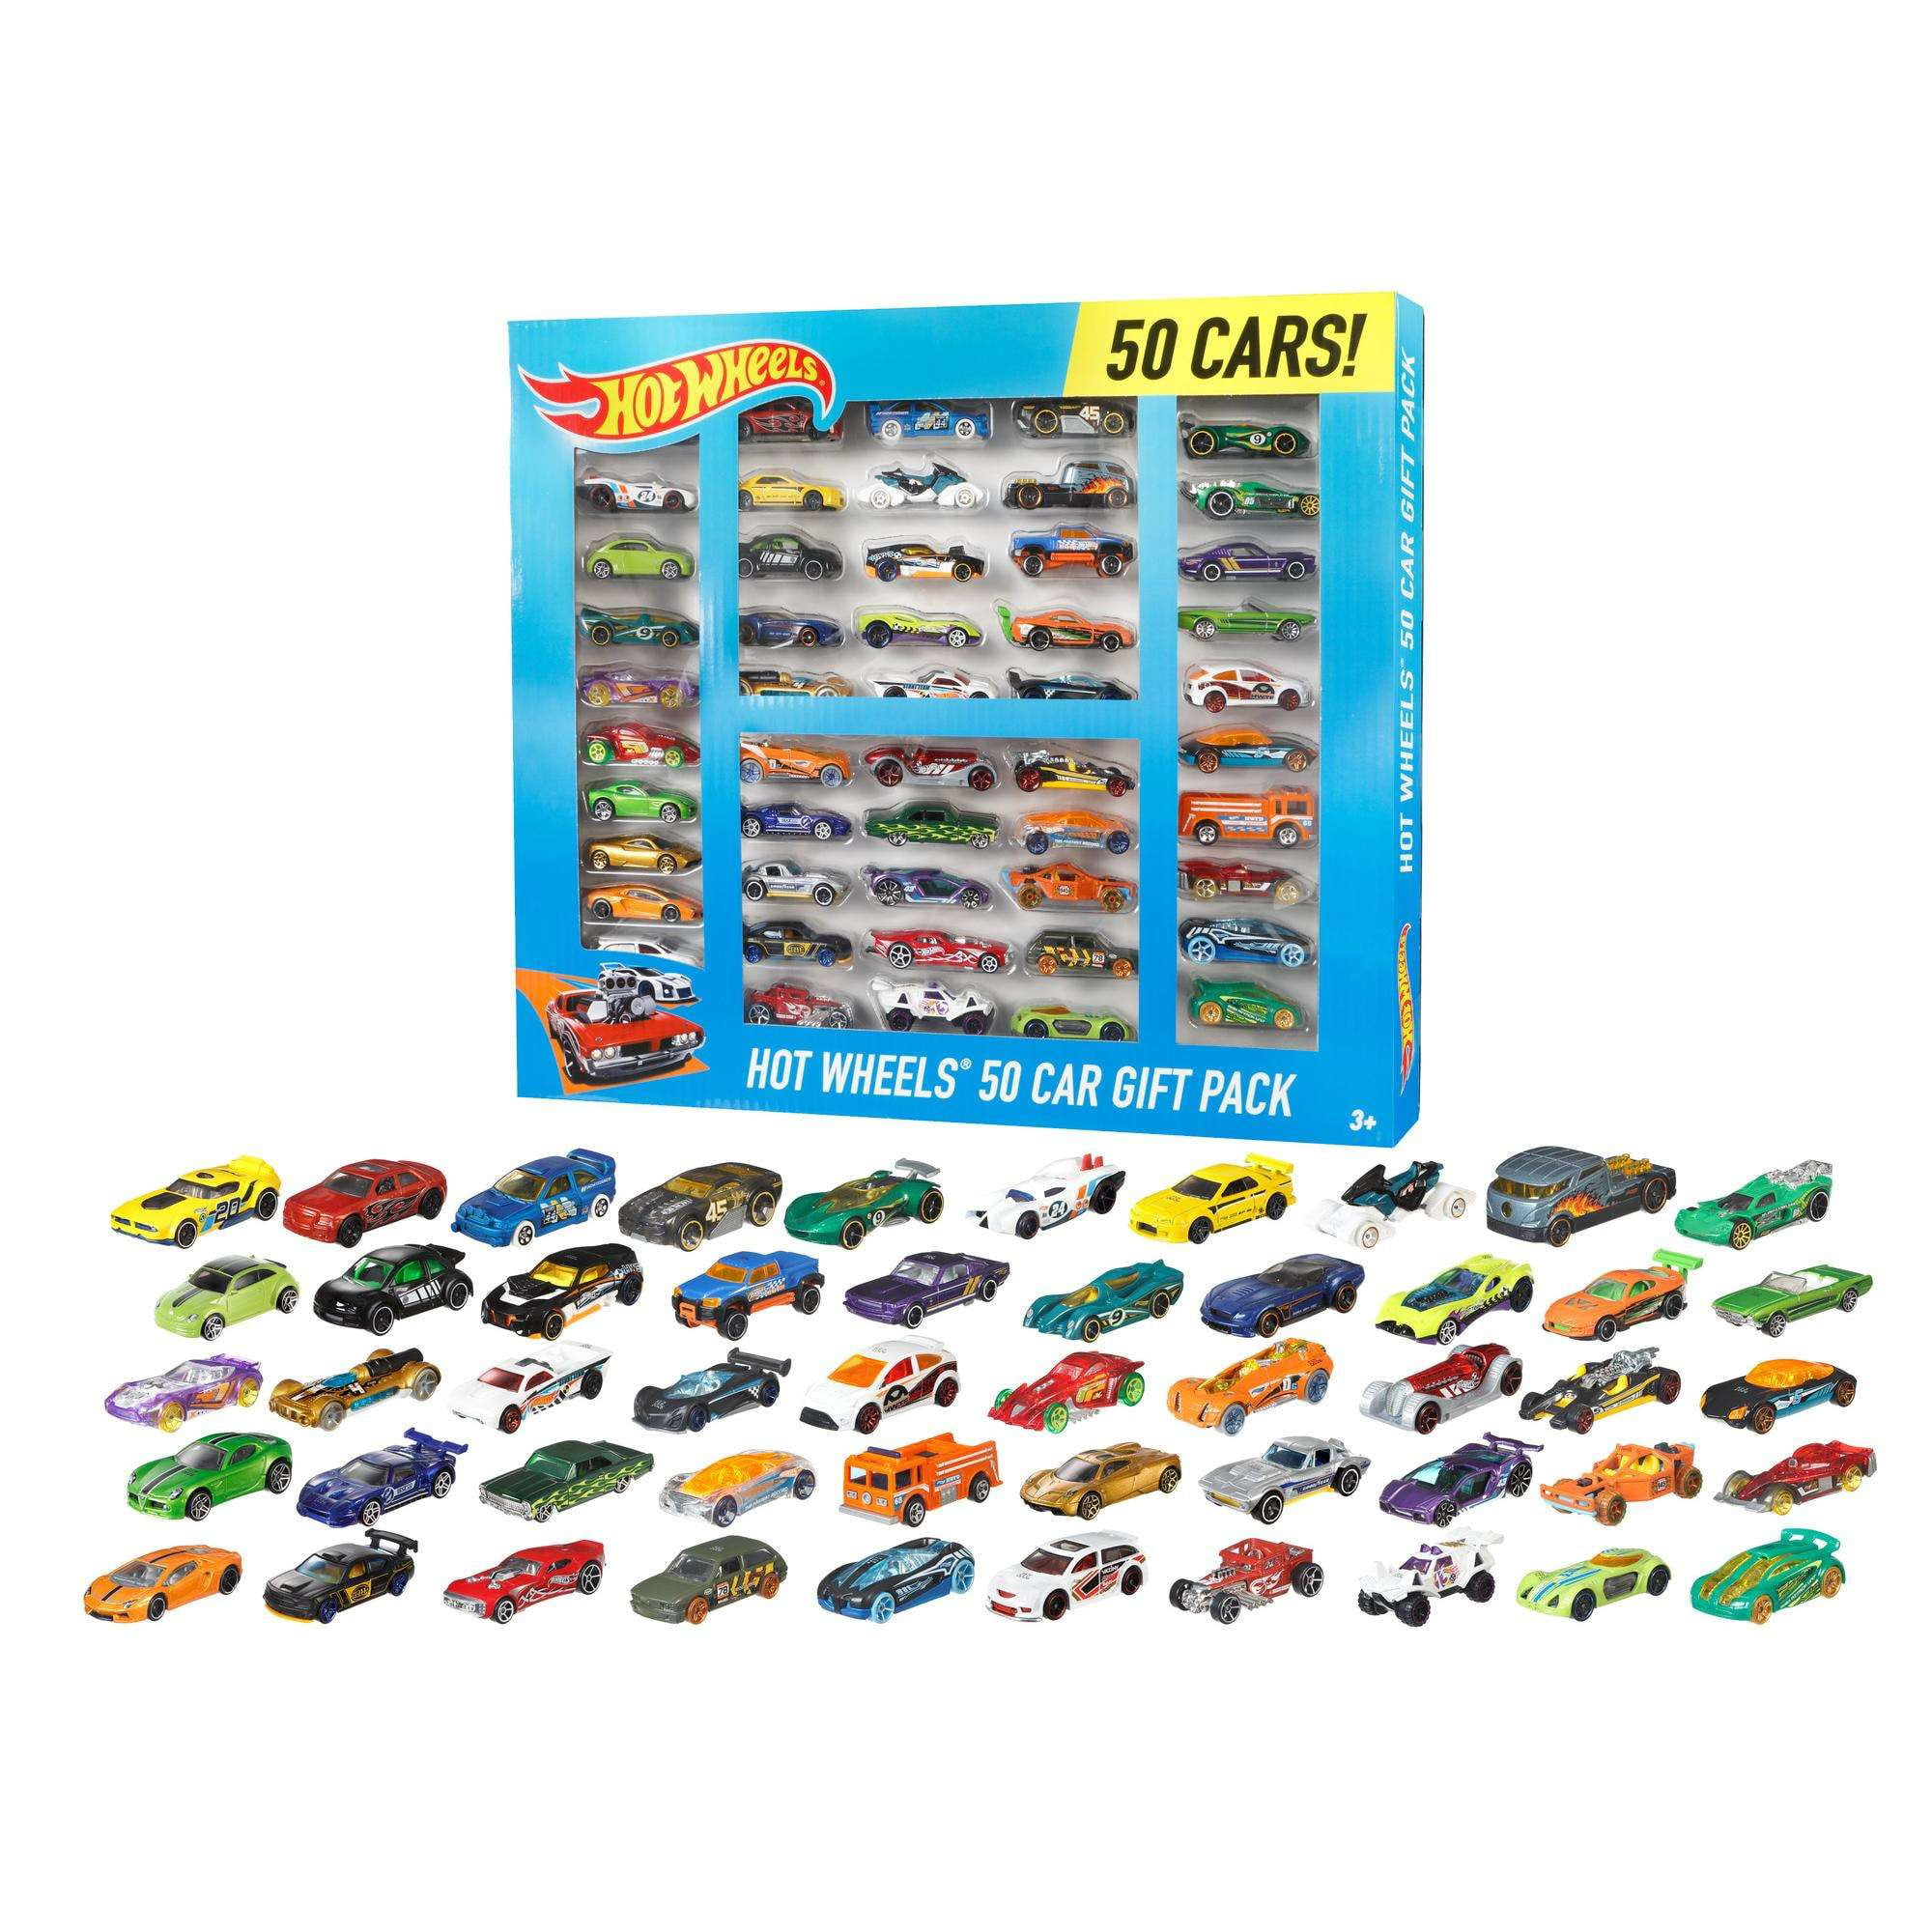 Hot Wheels 50 Car Gift Pack